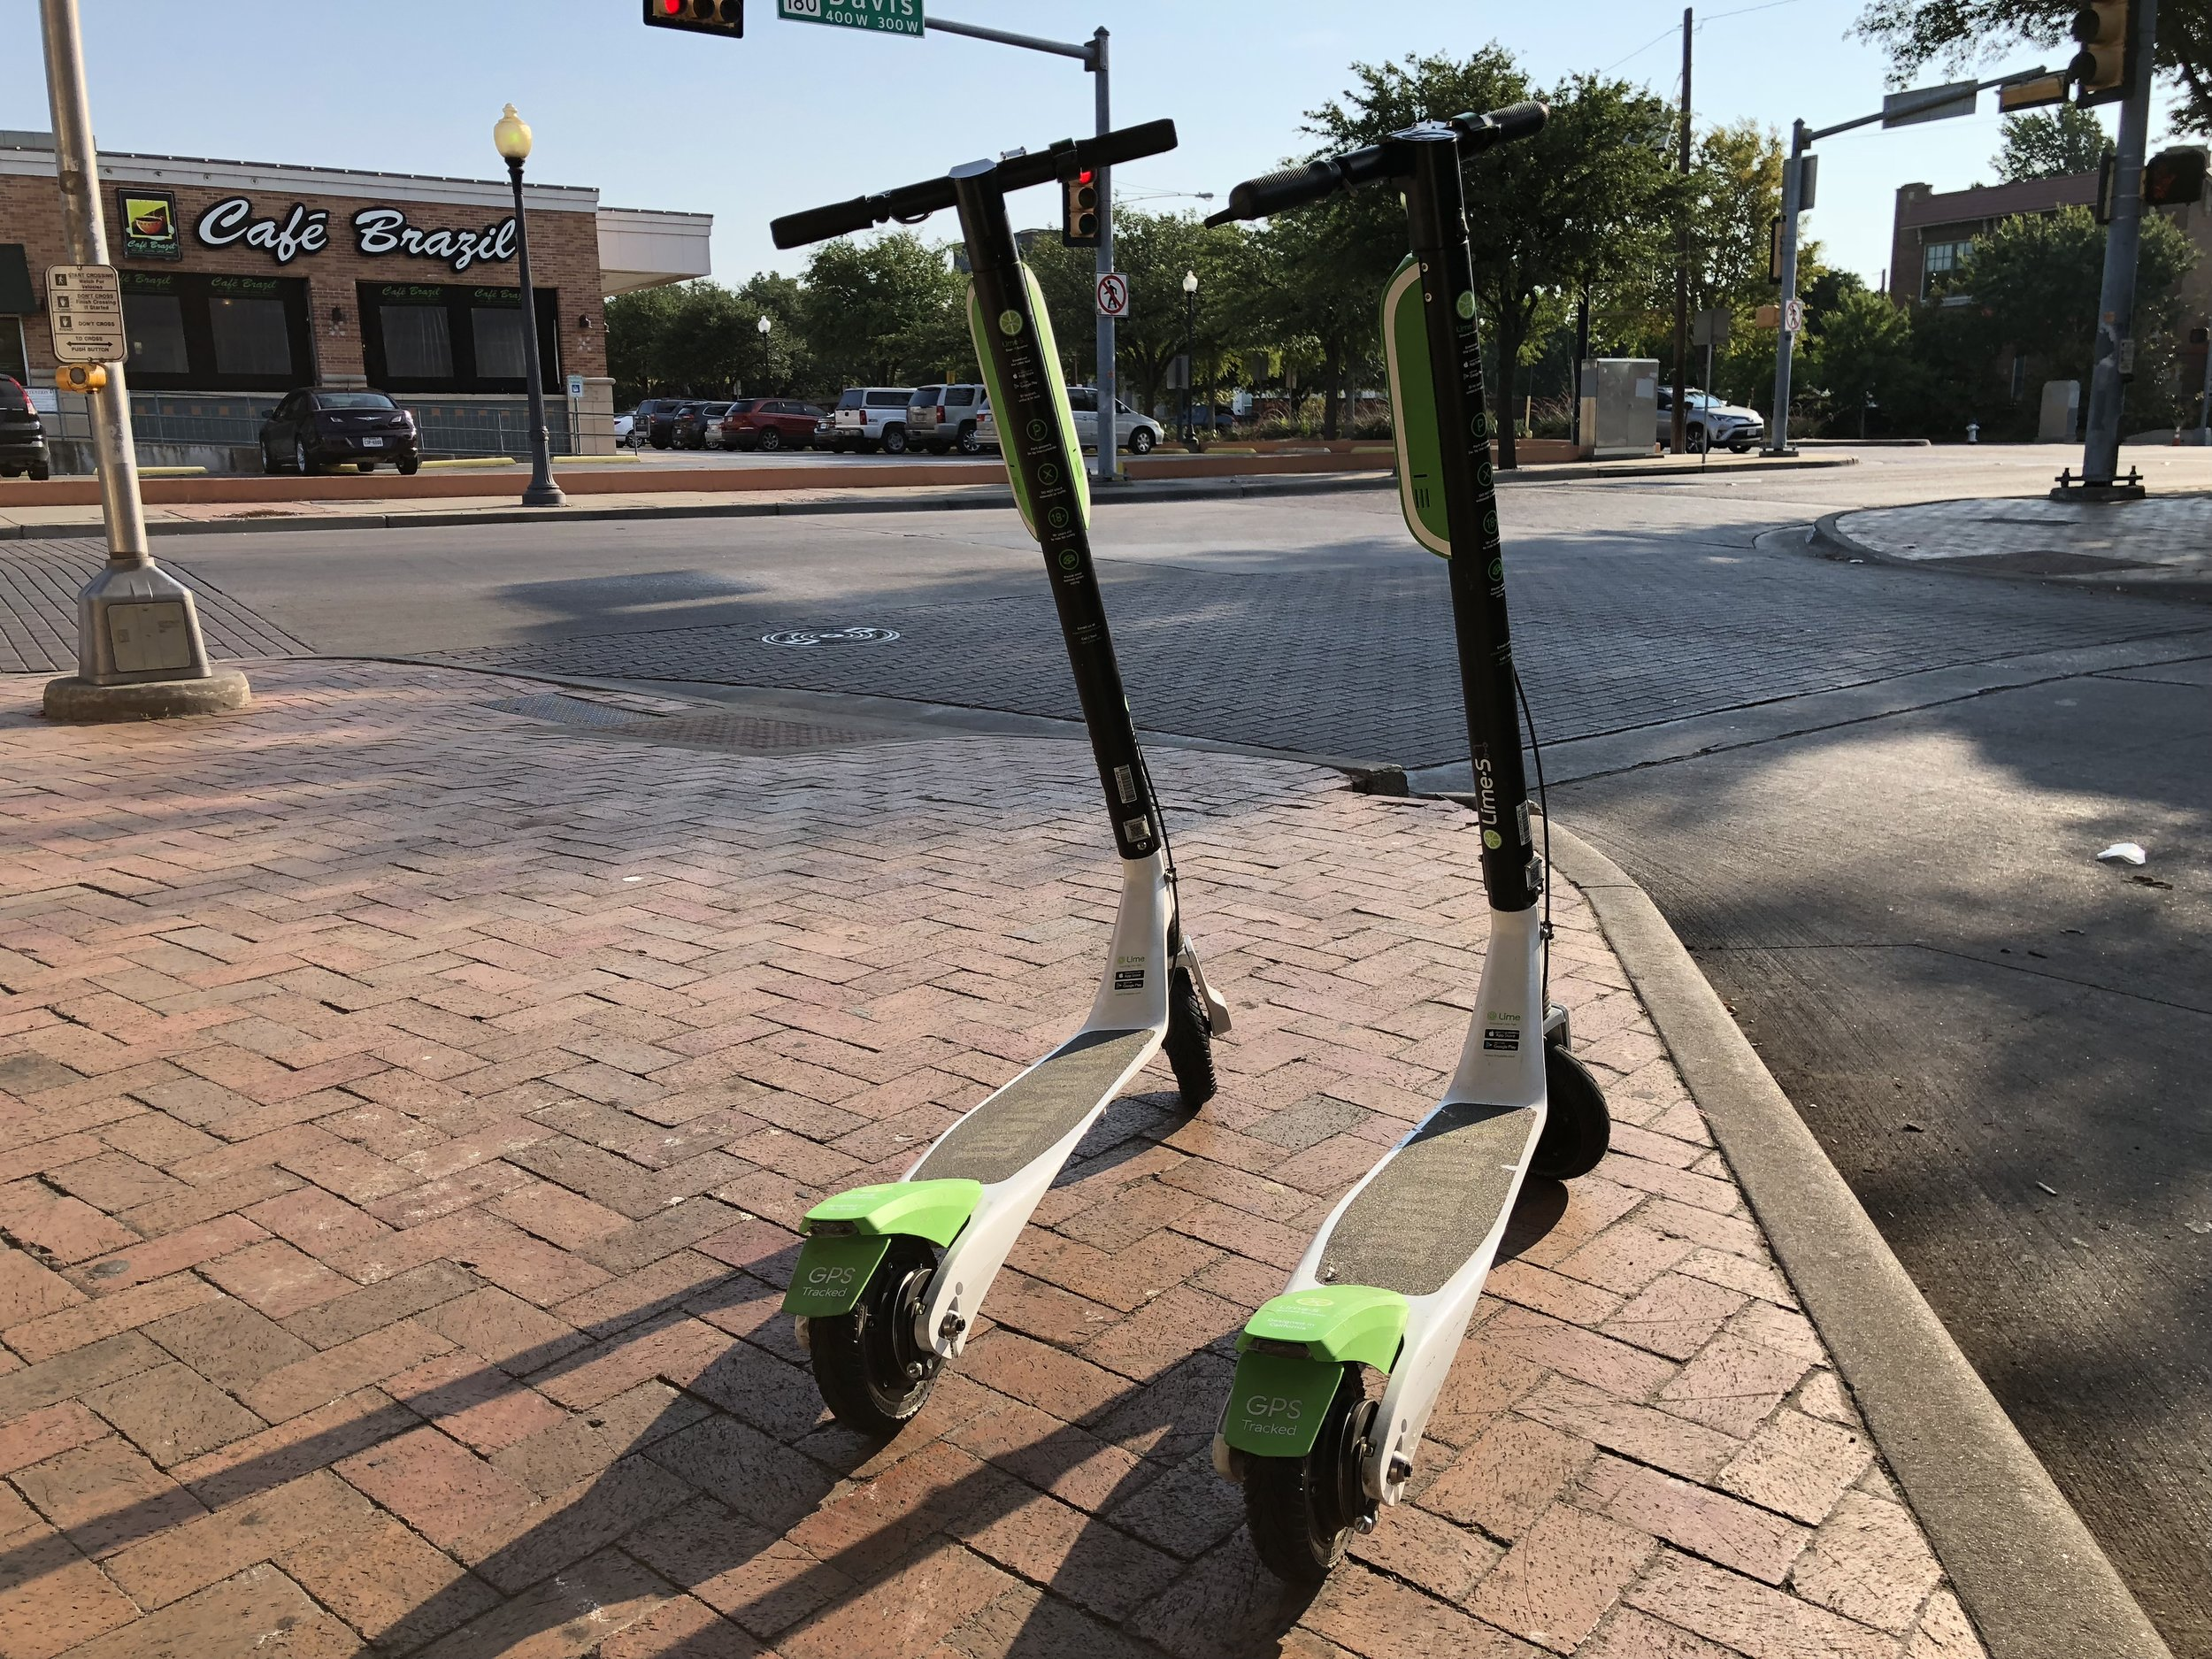 Scooters - A scooter drop point will be set up near the event, in areas that are within a mile of Bastille on Bishop. Throughout the night, Scooter services will be ensuring there are enough scooters at the drop point, as well as at the event entrance. (Worth noting: you need to download the Lime or Bird app to unlock them, and you must also have a driver's license.)Listed below is a main scooter drop point, where you can park and ride.